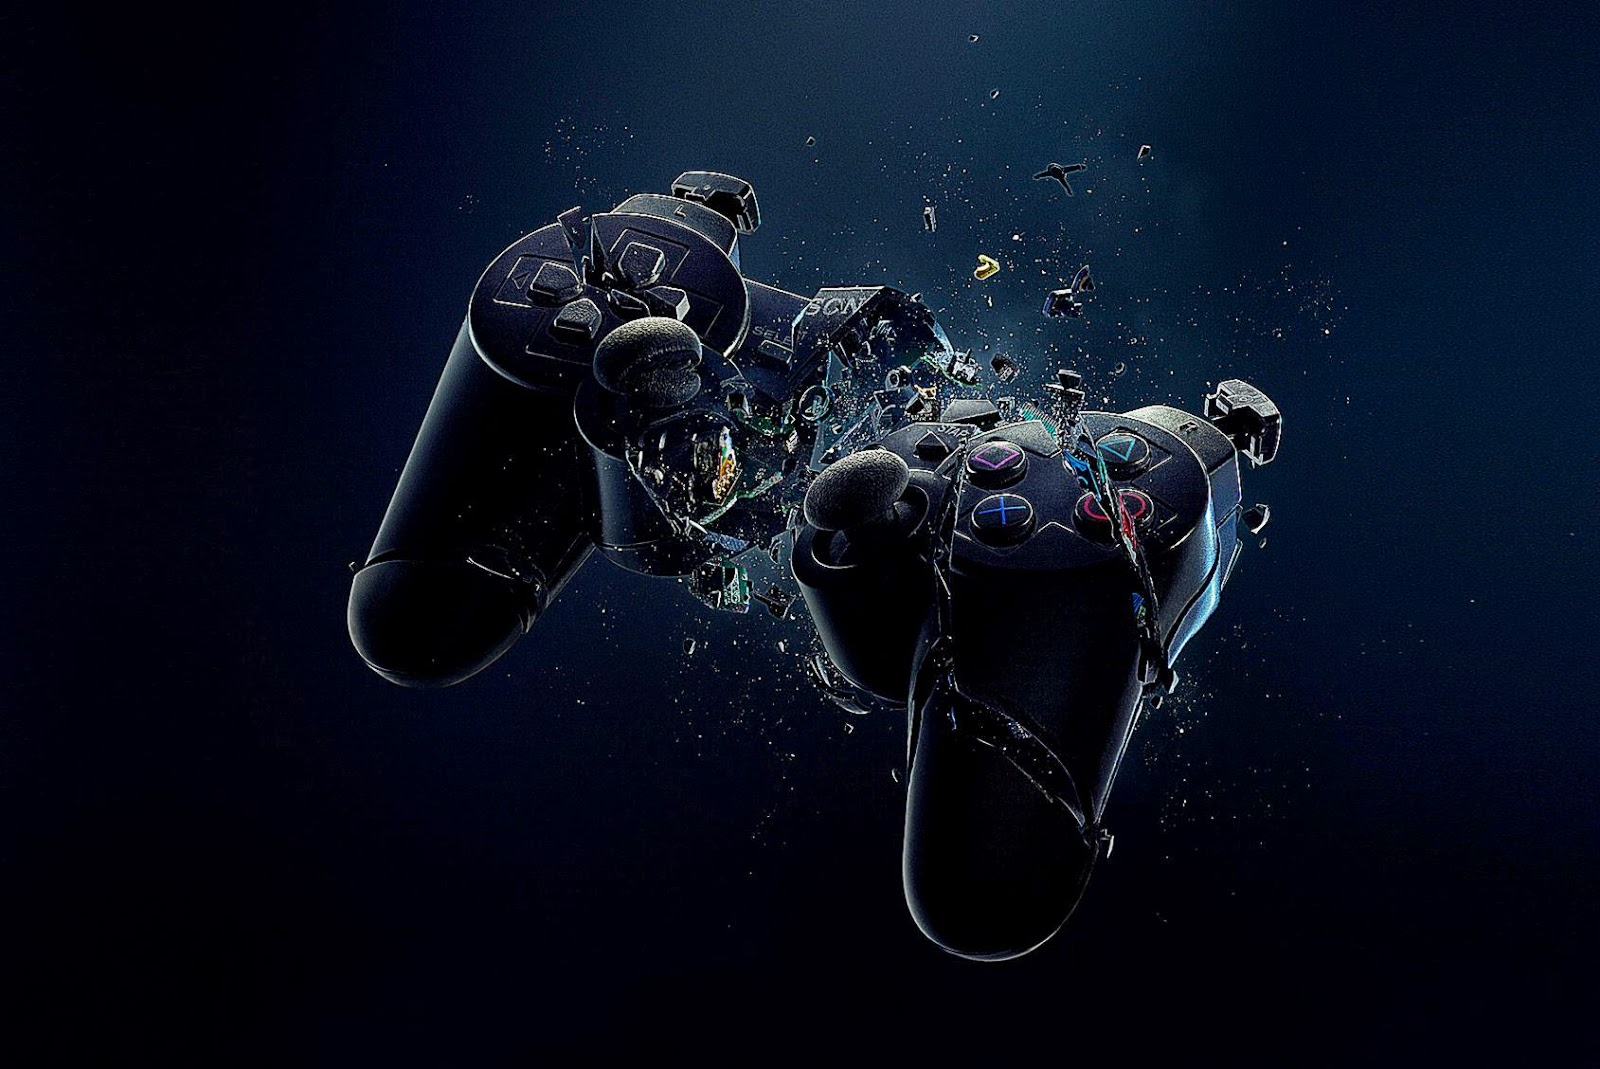 Cool Hd Wallpapers Backgrounds: PlayStation 4 Wallpaper HD